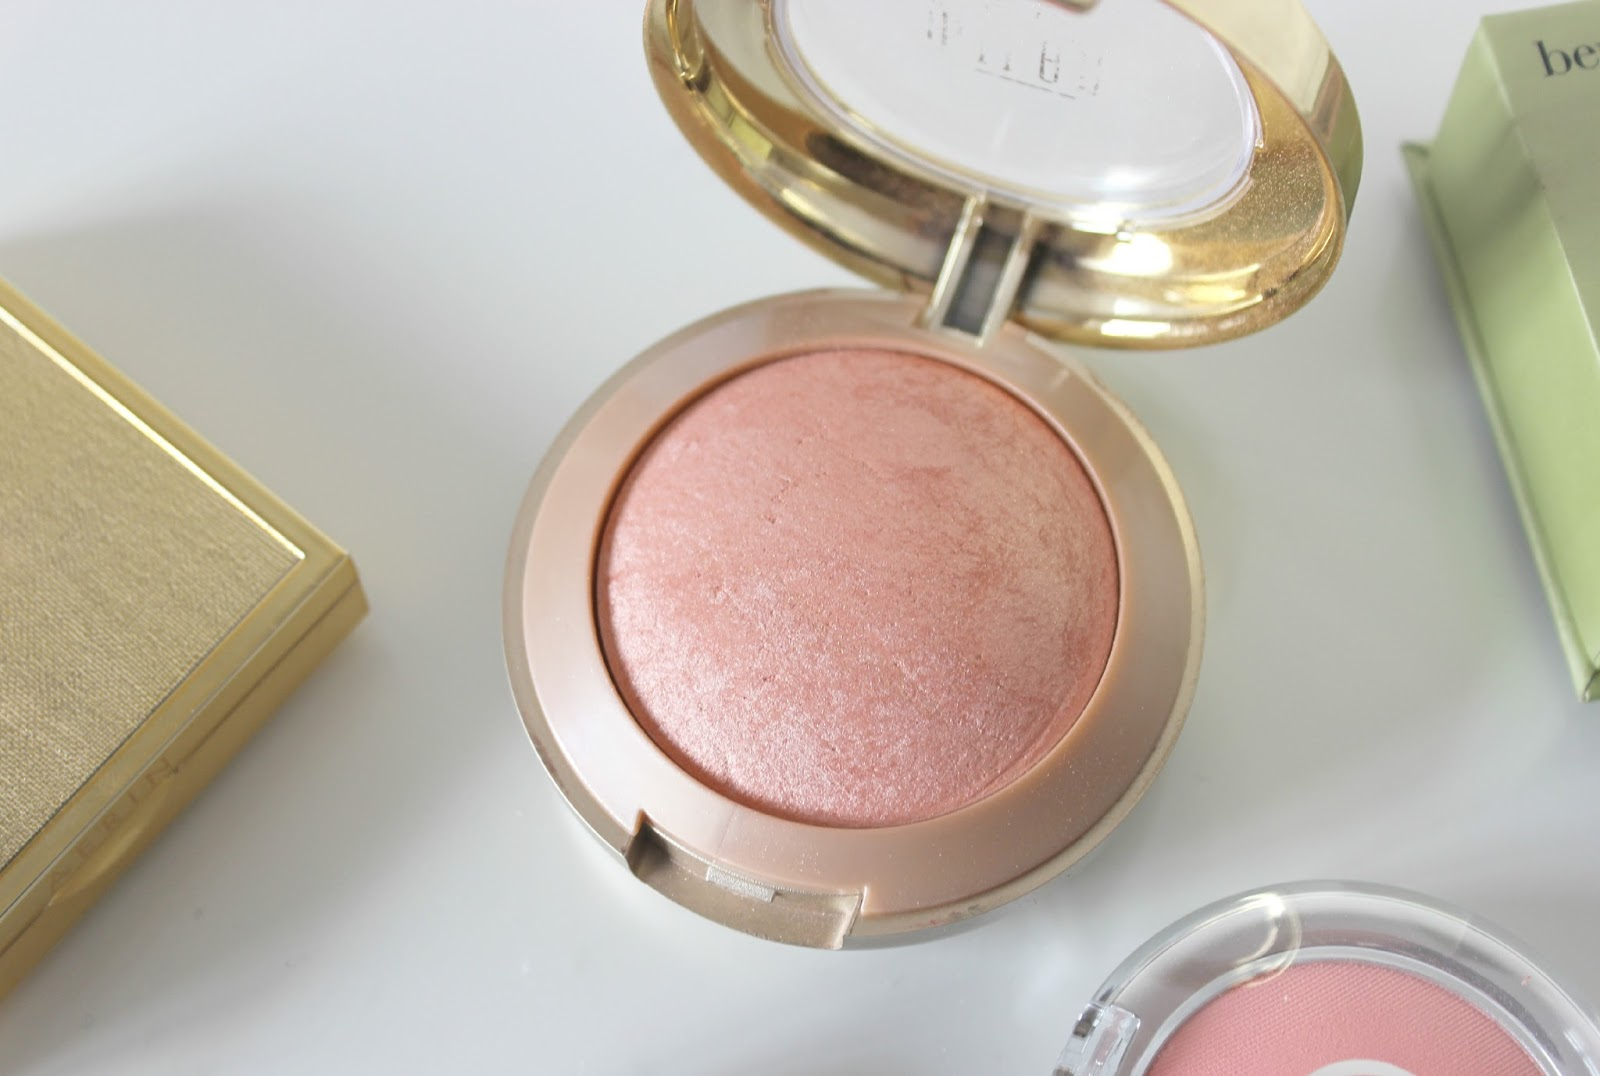 A picture of Milani Luminoso Baked Blush